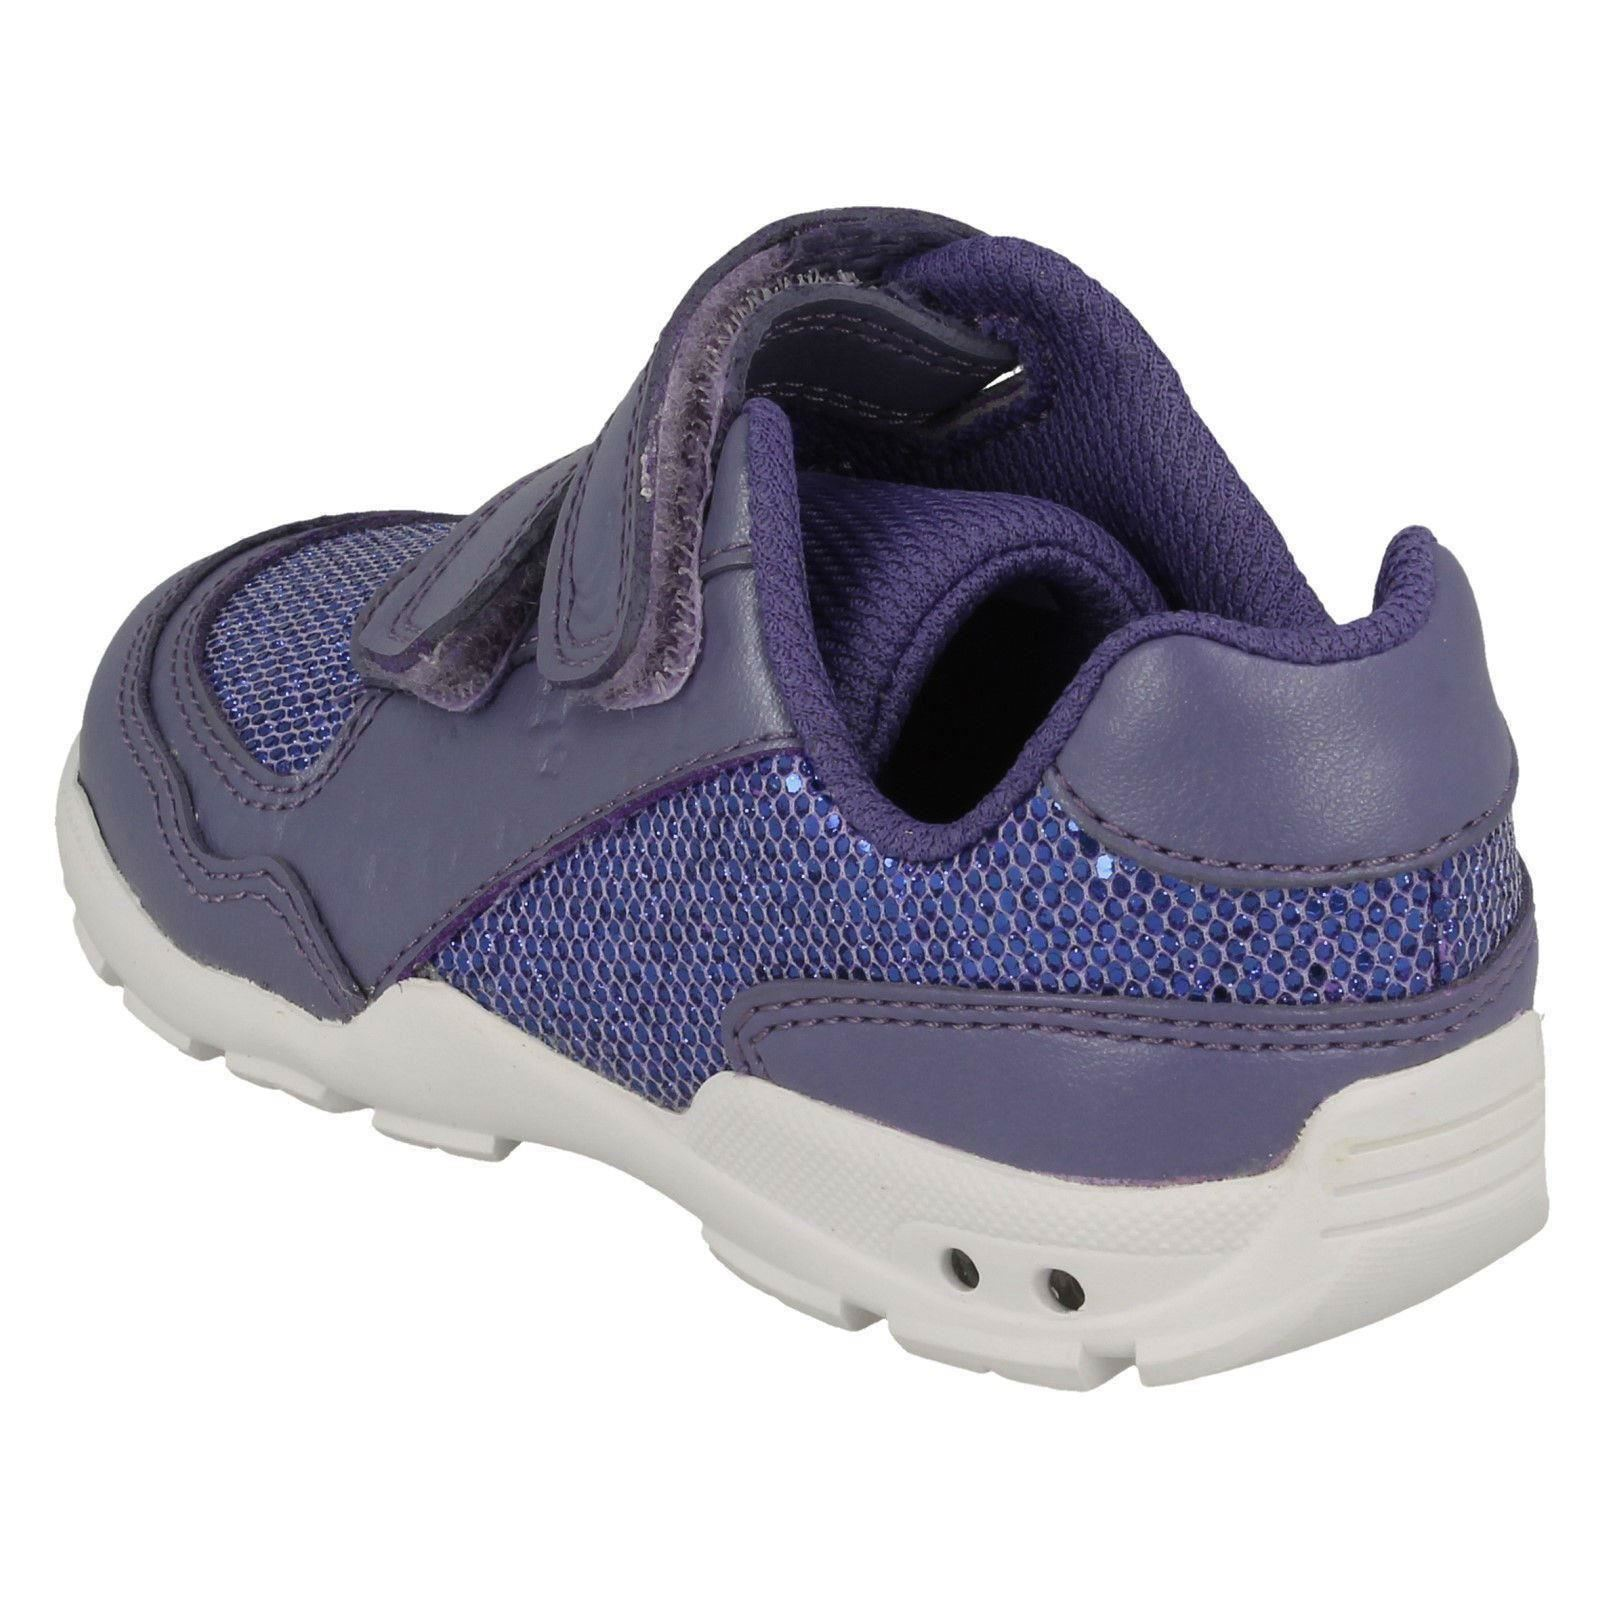 First Shoes By Clarks Girls Trainers Brite Play